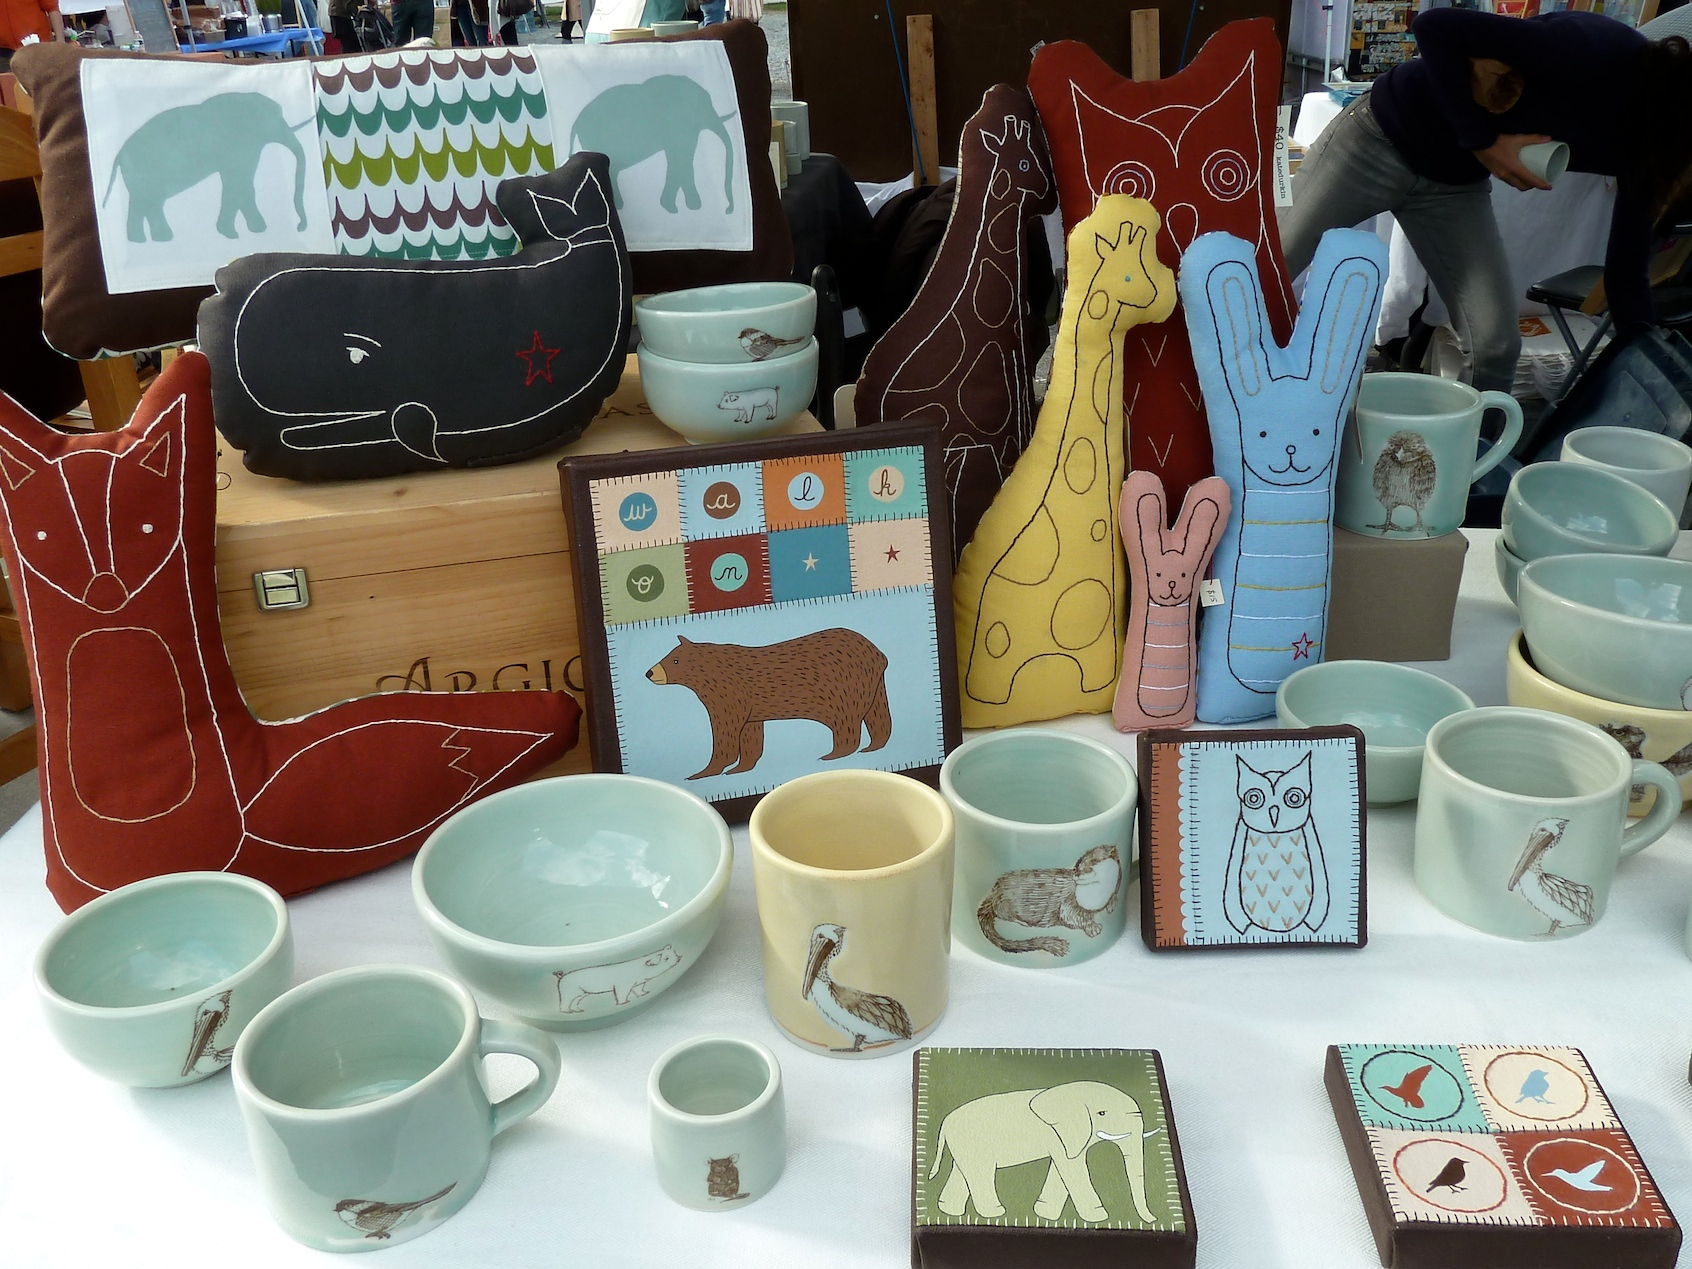 Kate Durkin soft kids toys, pillows,and artwork at Brooklyn Flea